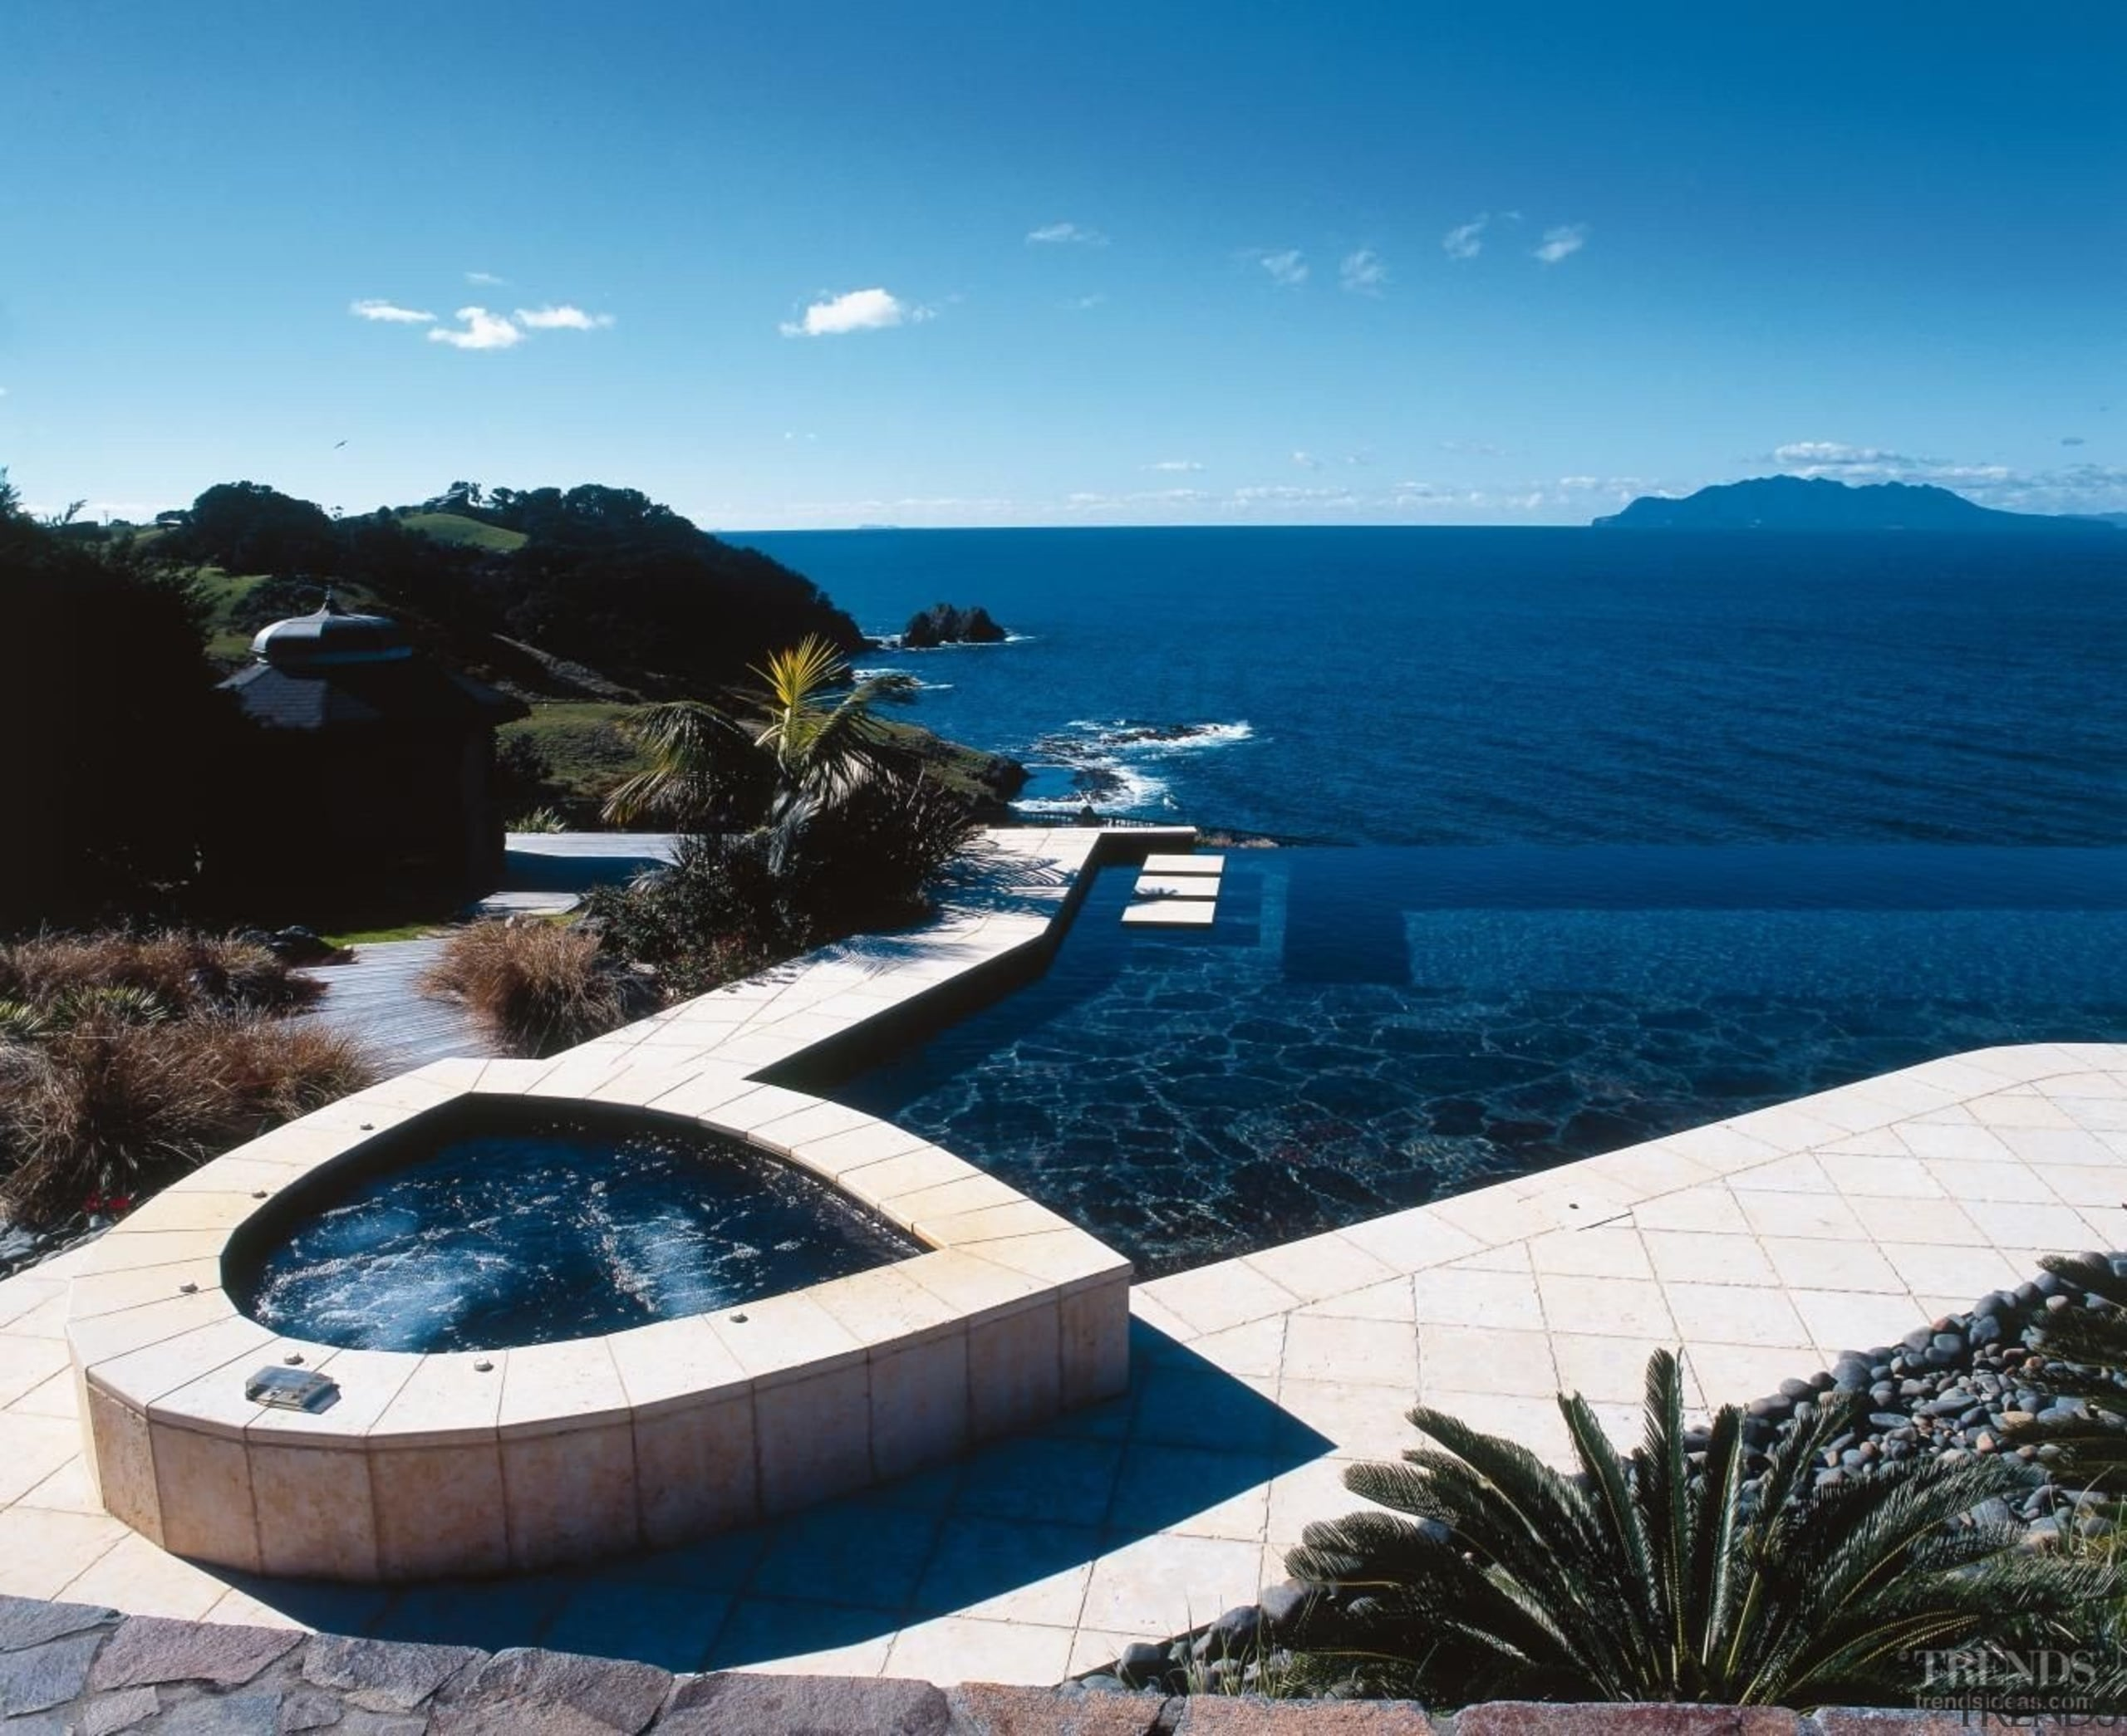 See more images from this collection leisure, property, sea, sky, swimming pool, water, teal